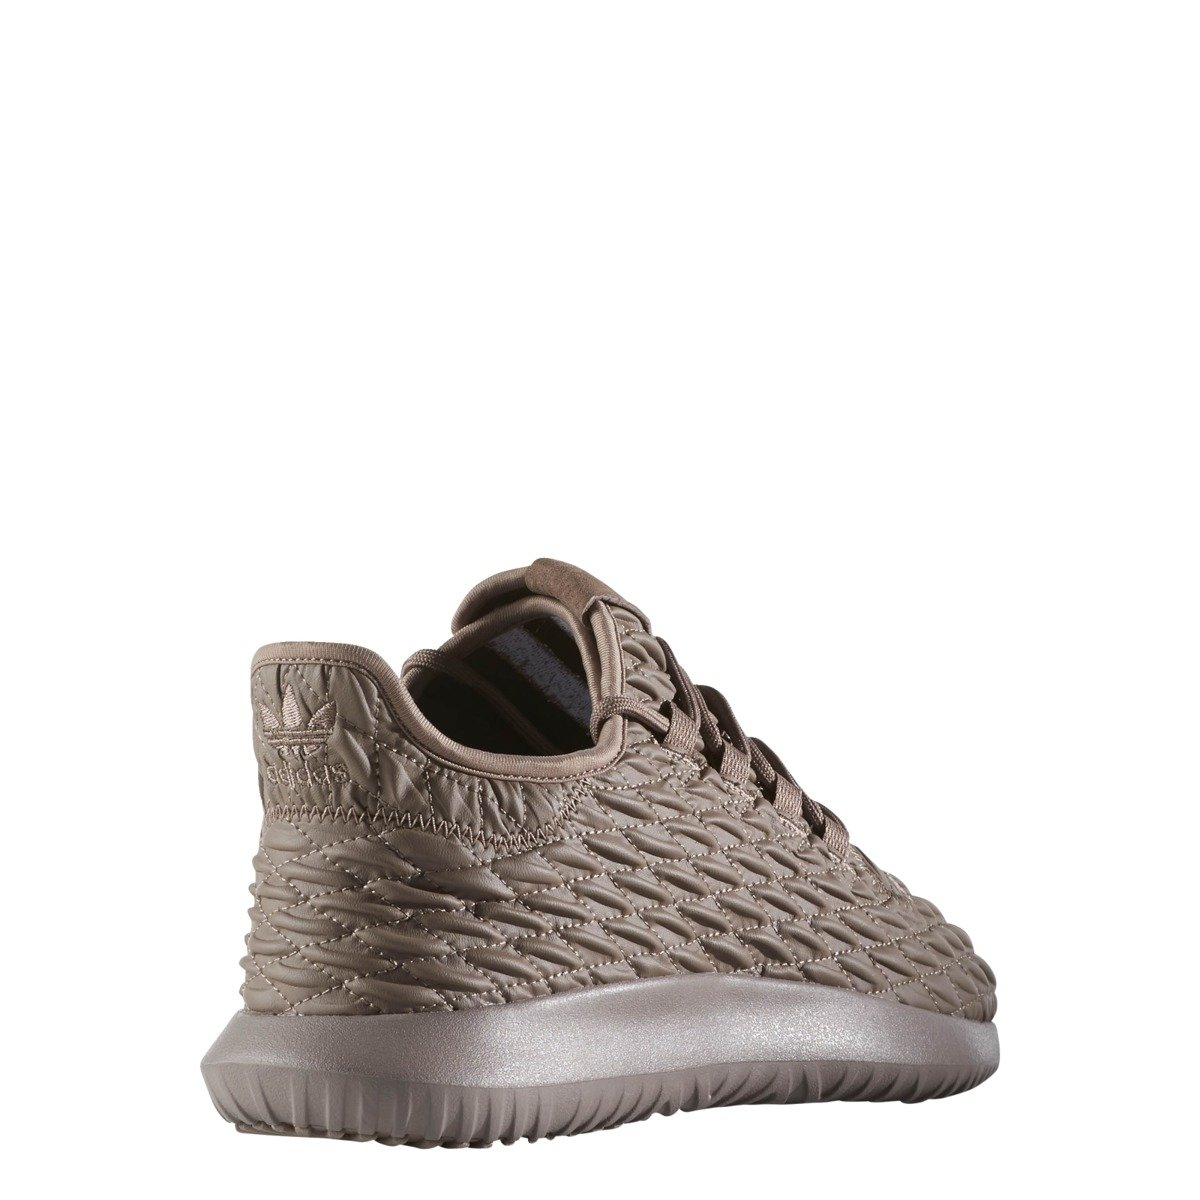 adidas tubular shadow buty